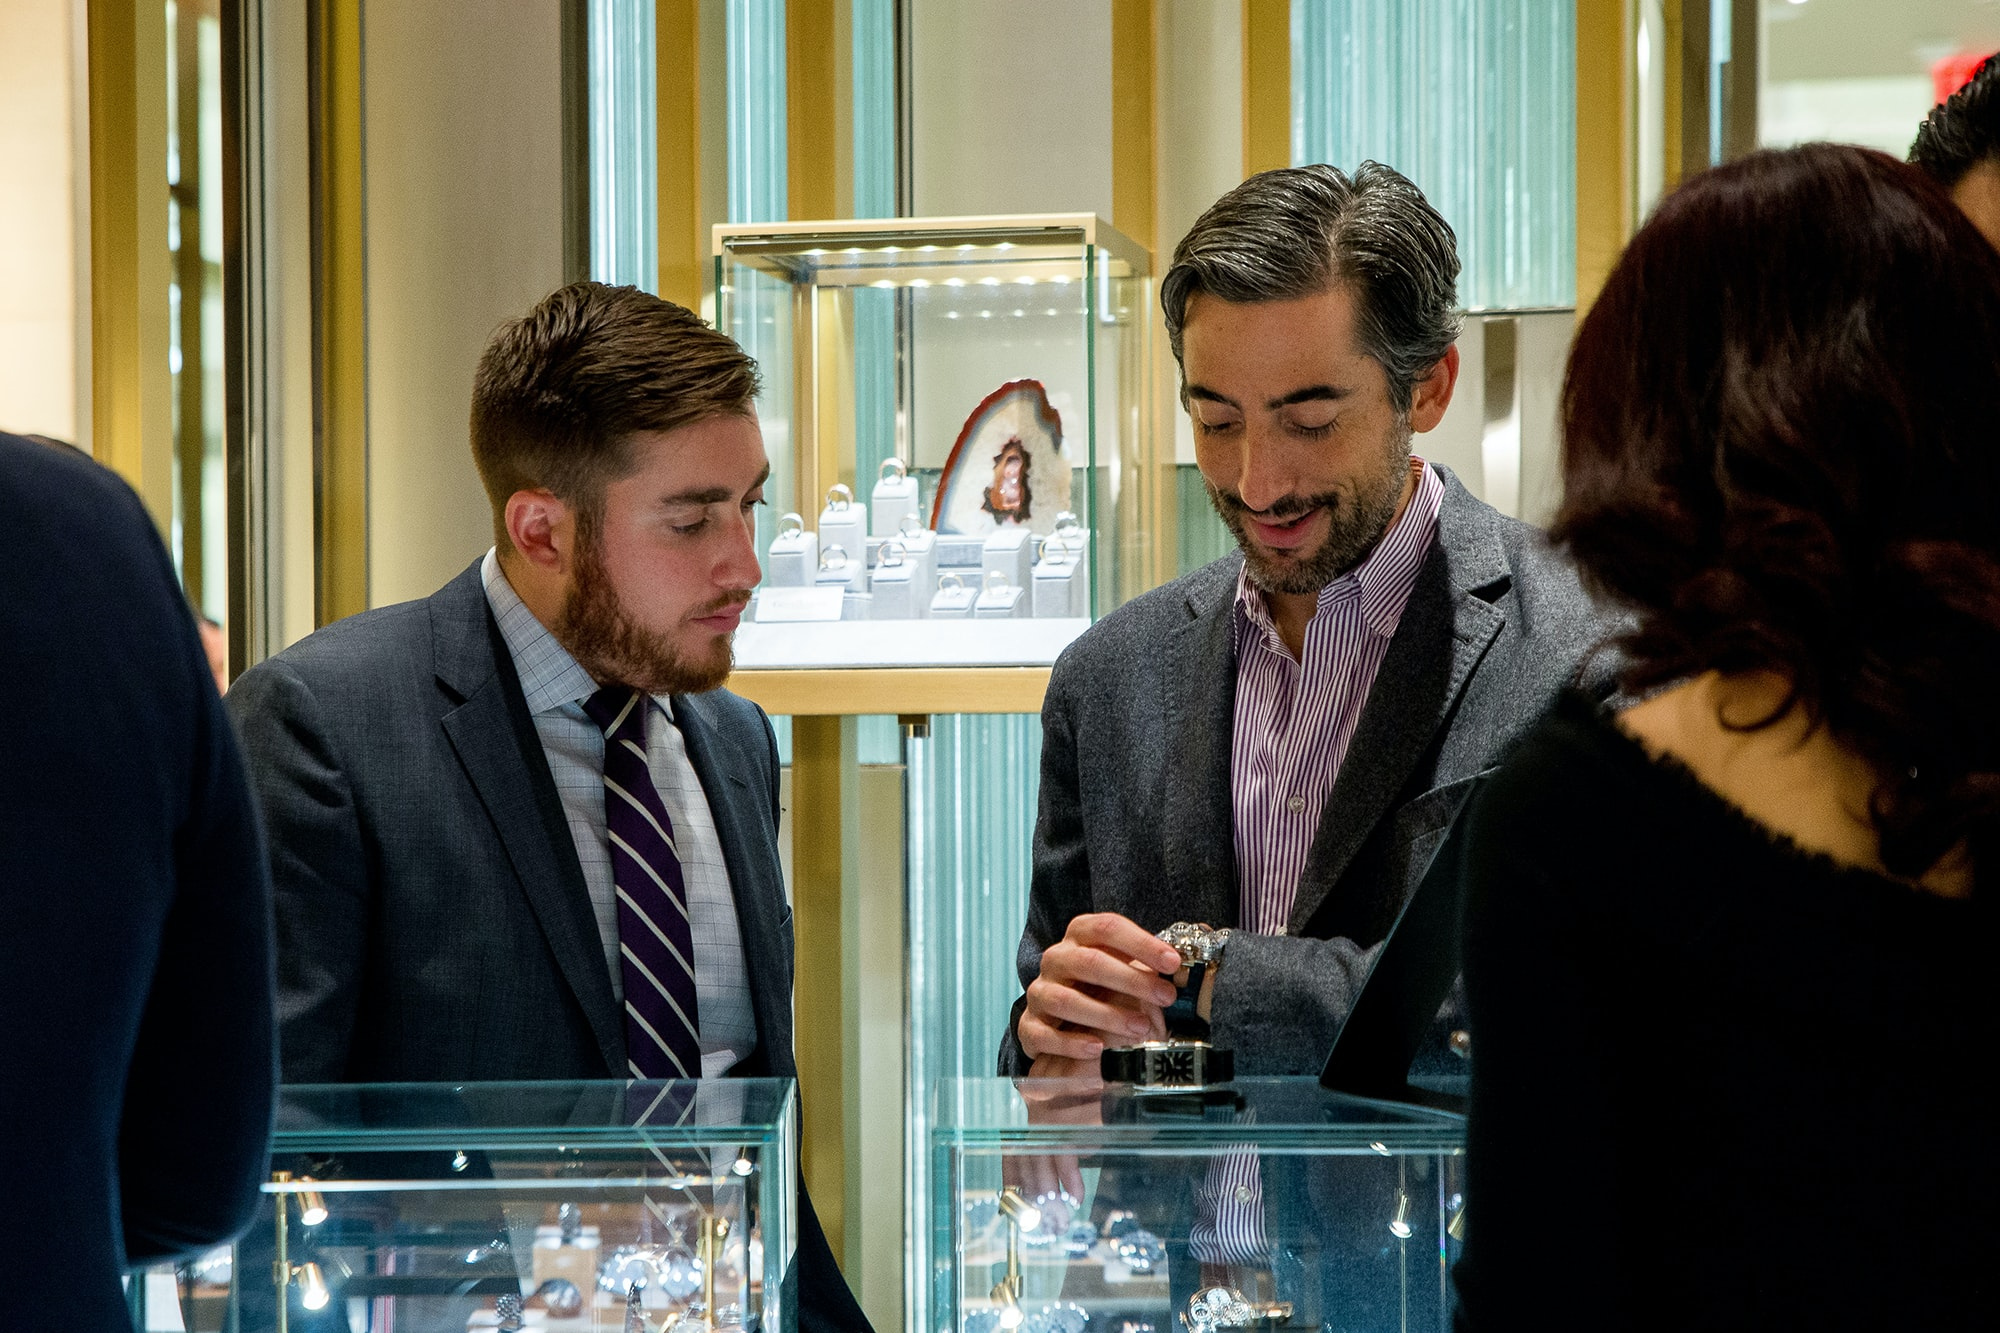 Photo Report: HODINKEE Celebrates London Jewelers' New Store In New York City's Oculus Photo Report: HODINKEE Celebrates London Jewelers' New Store In New York City's Oculus 20161109 LondonJewelersxHodinkee 055